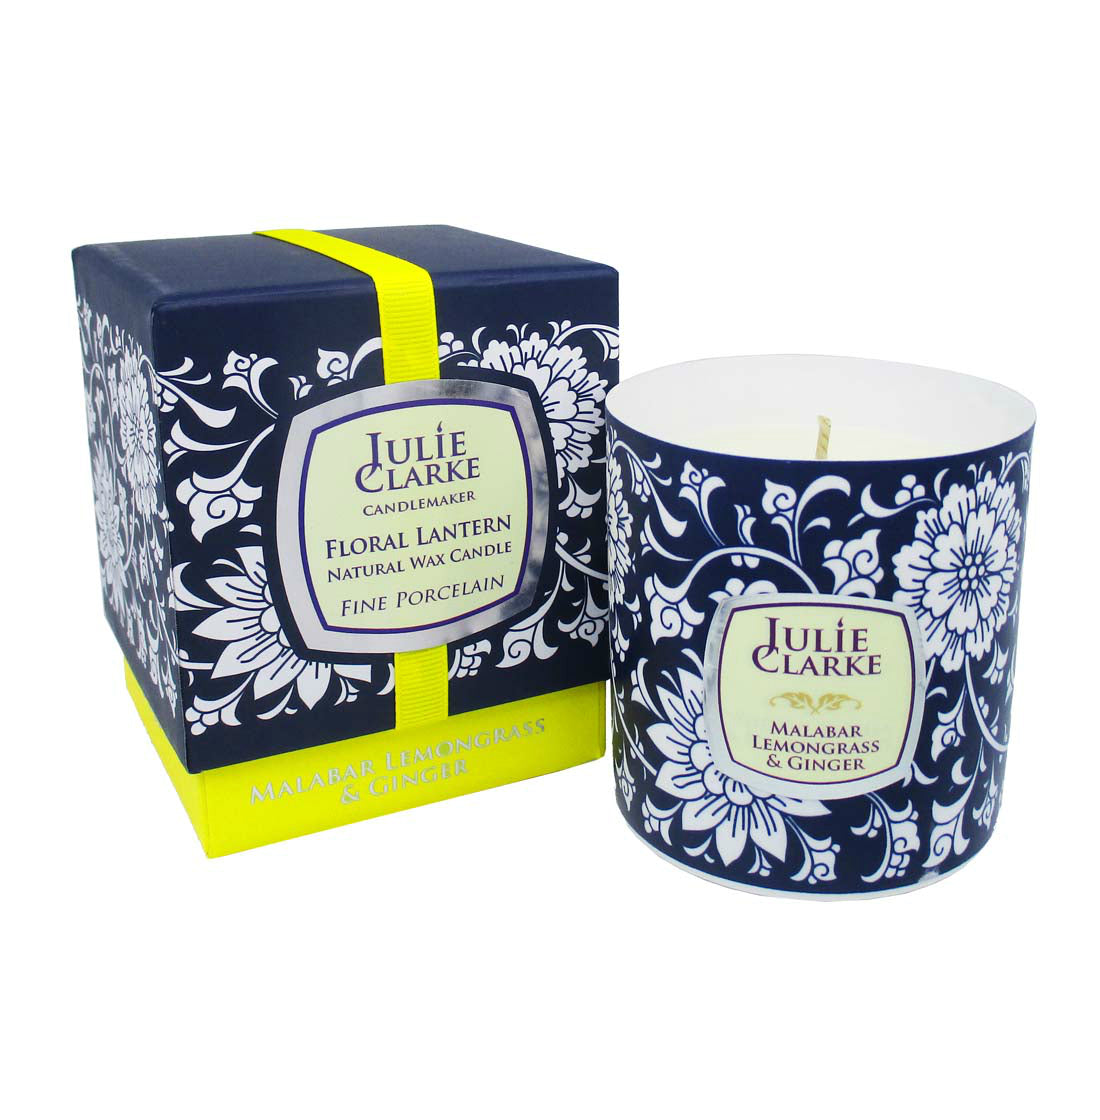 Malabar Lemongrass and Ginger Floral Porcelain Candle